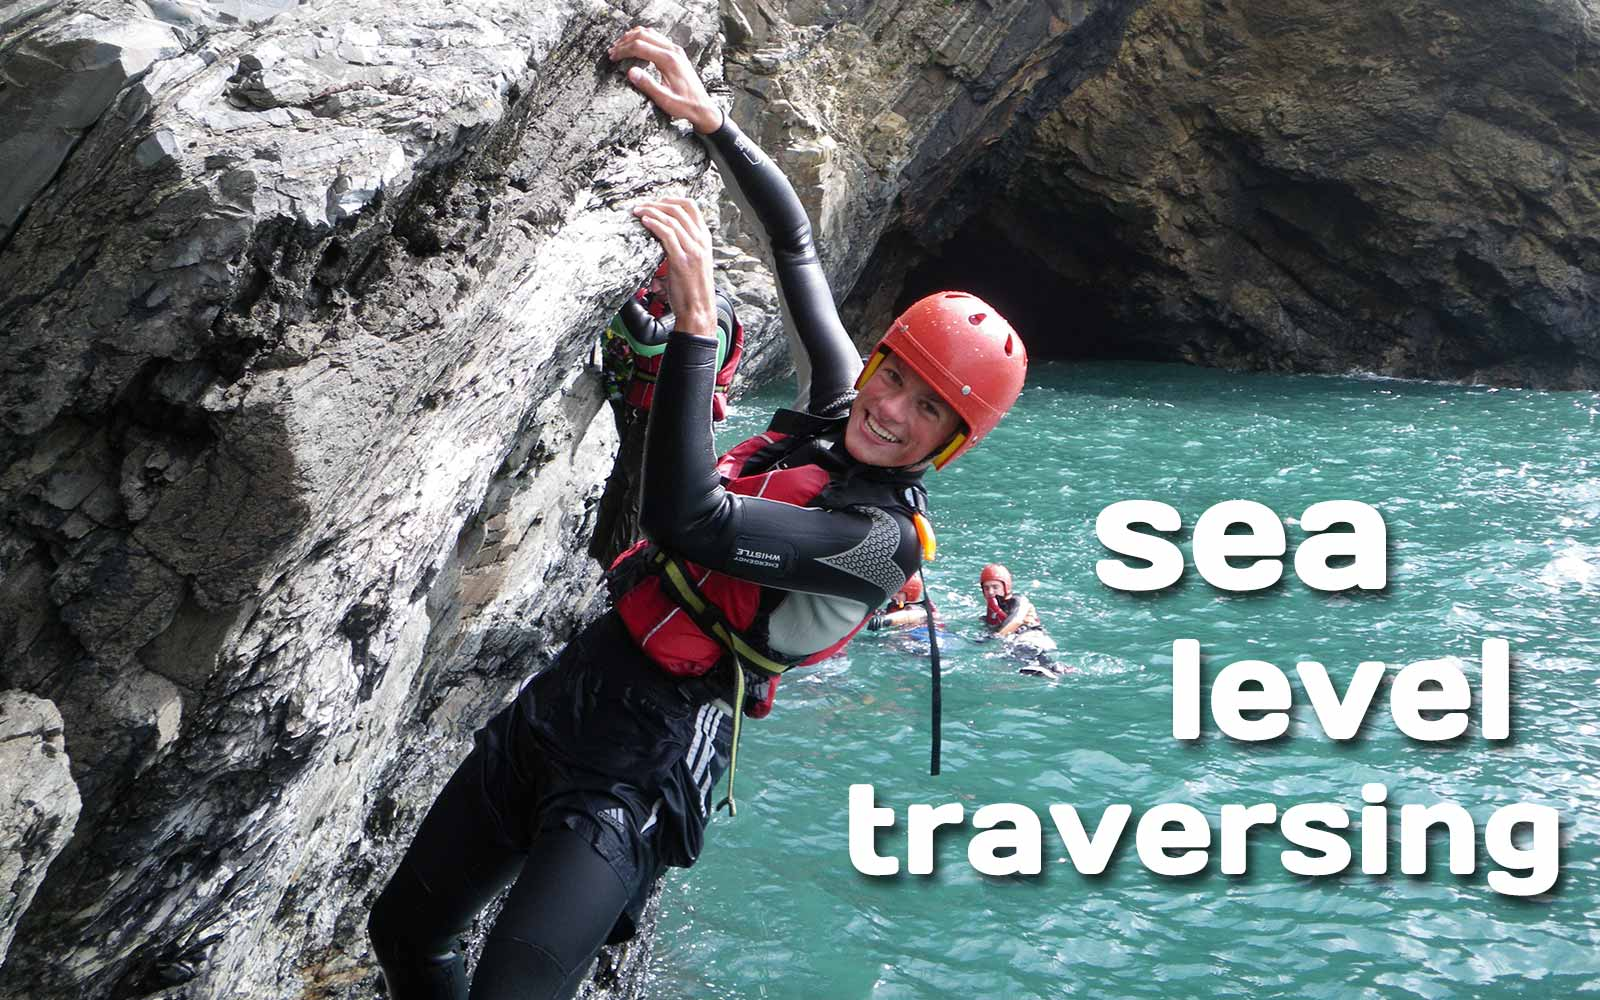 Sea level traversing - sea cliff climbing along the Pembrokeshire coast in Wales